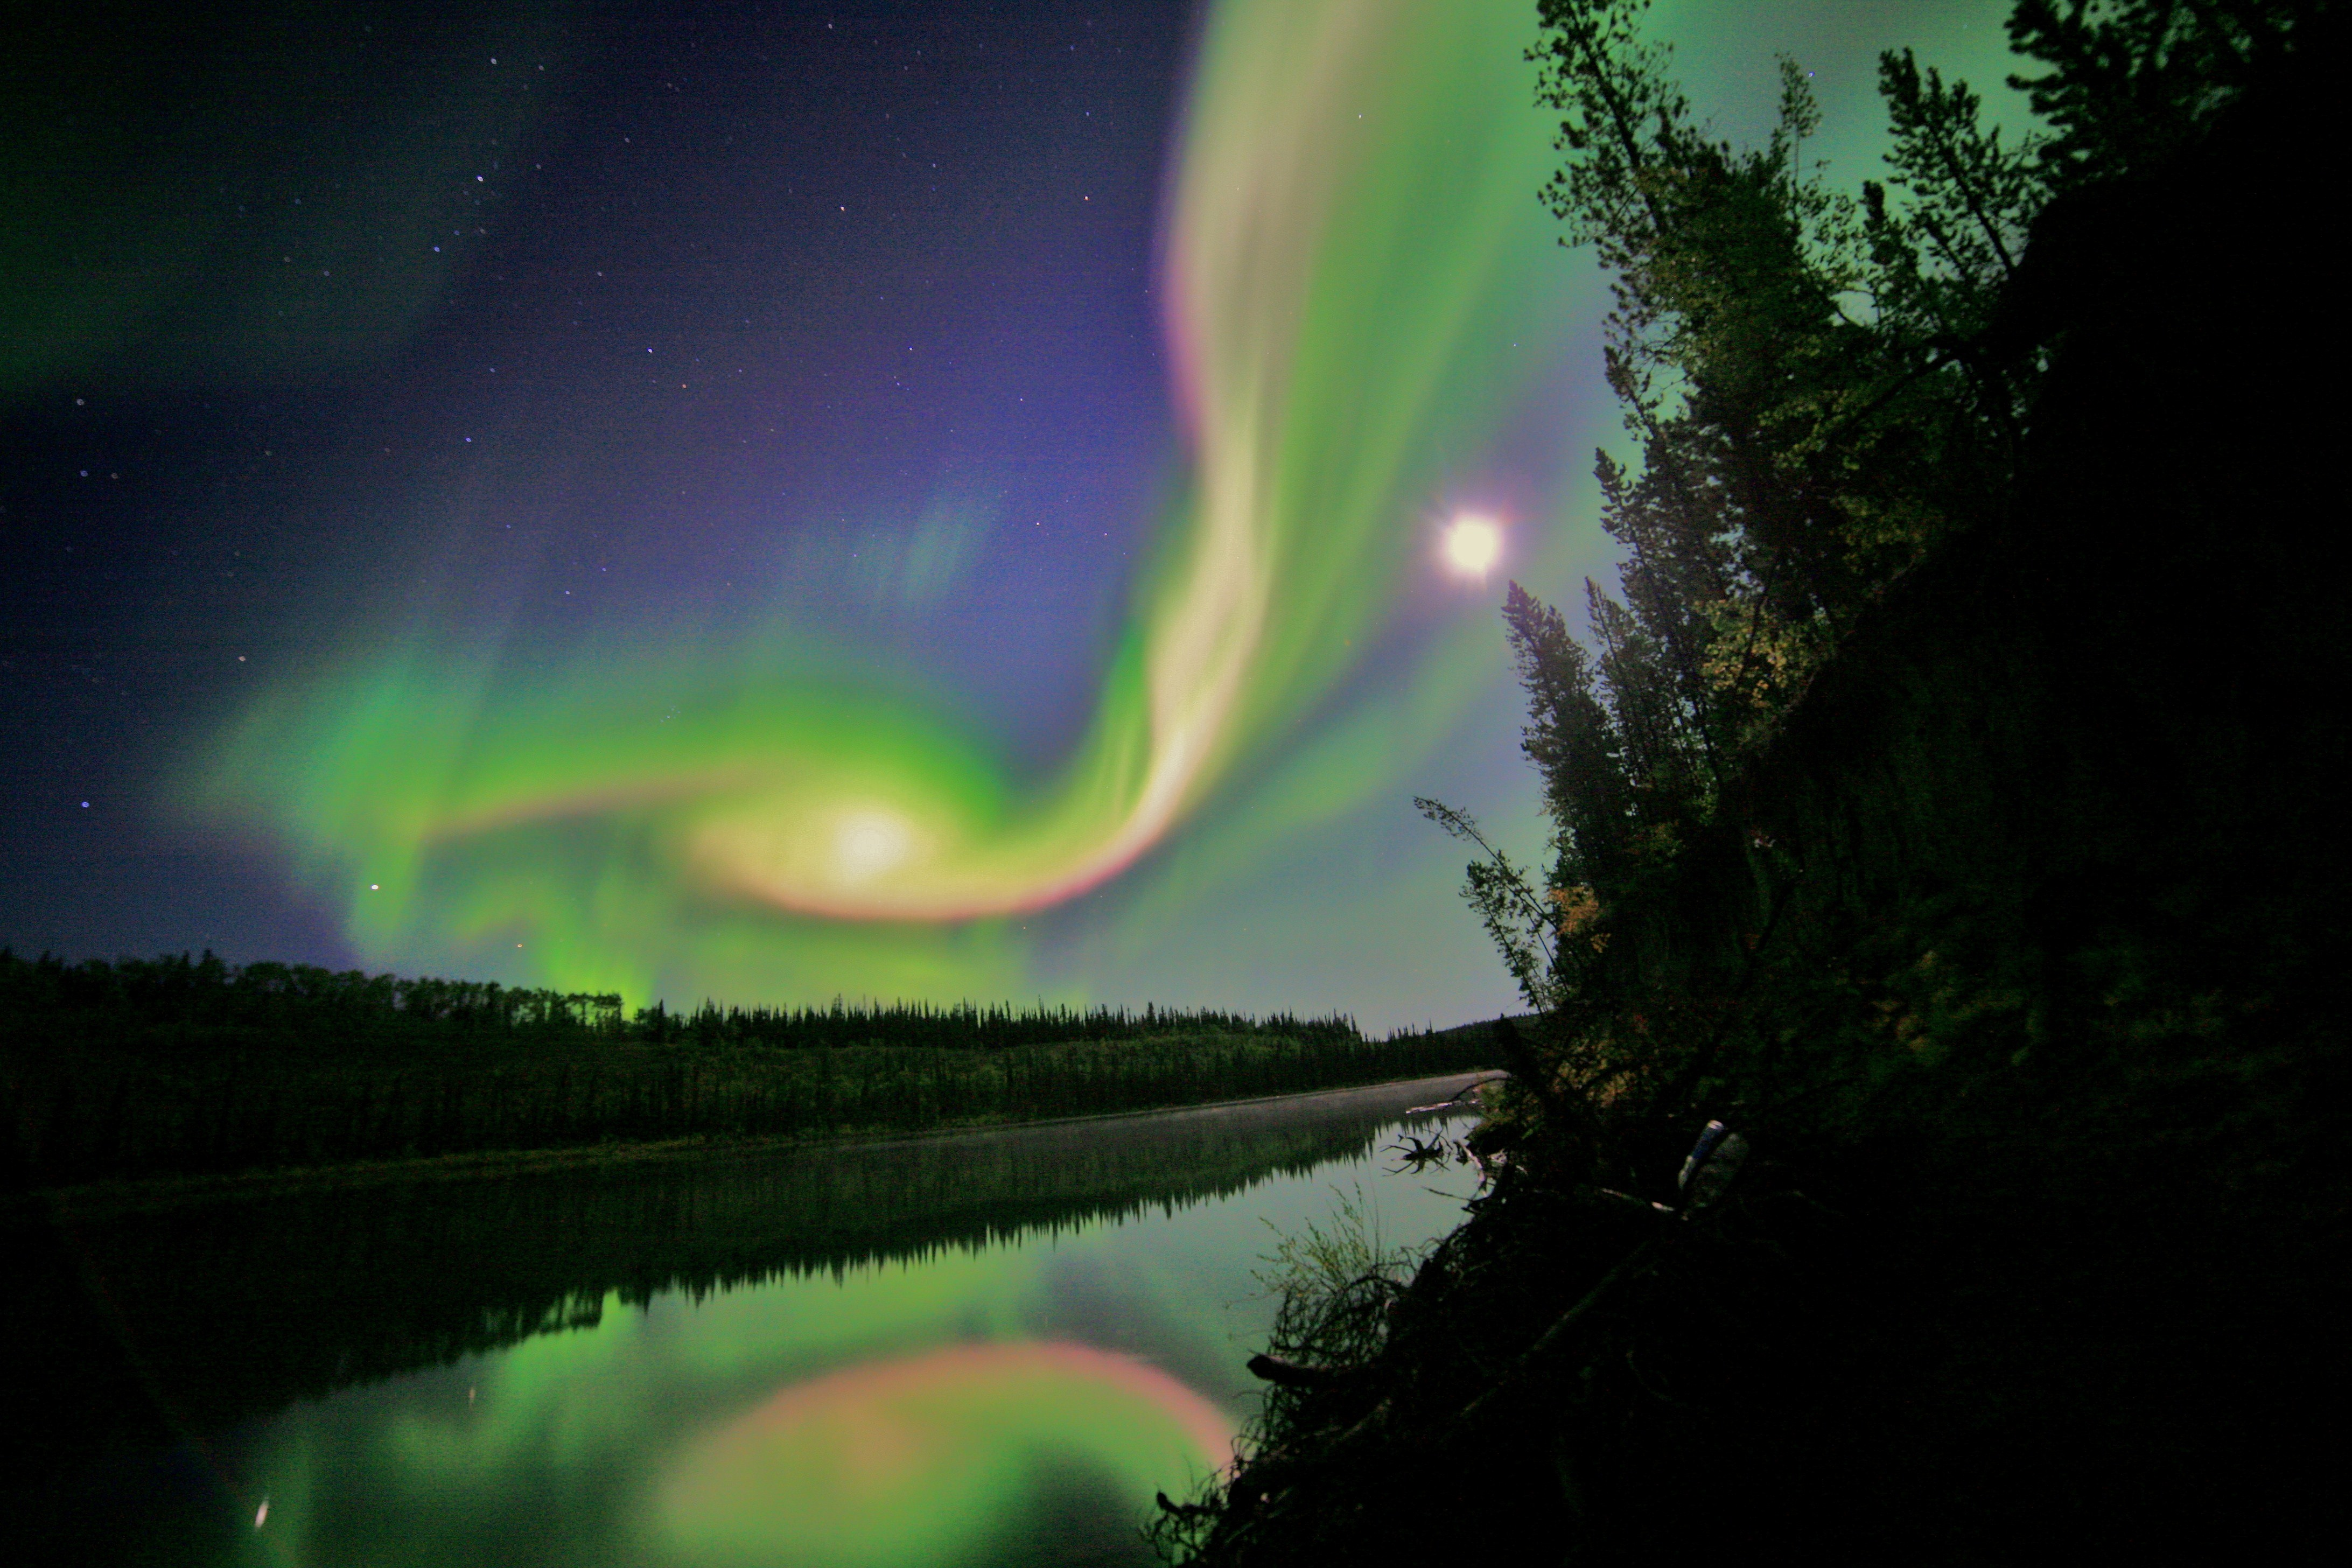 nasa aurora - photo #32